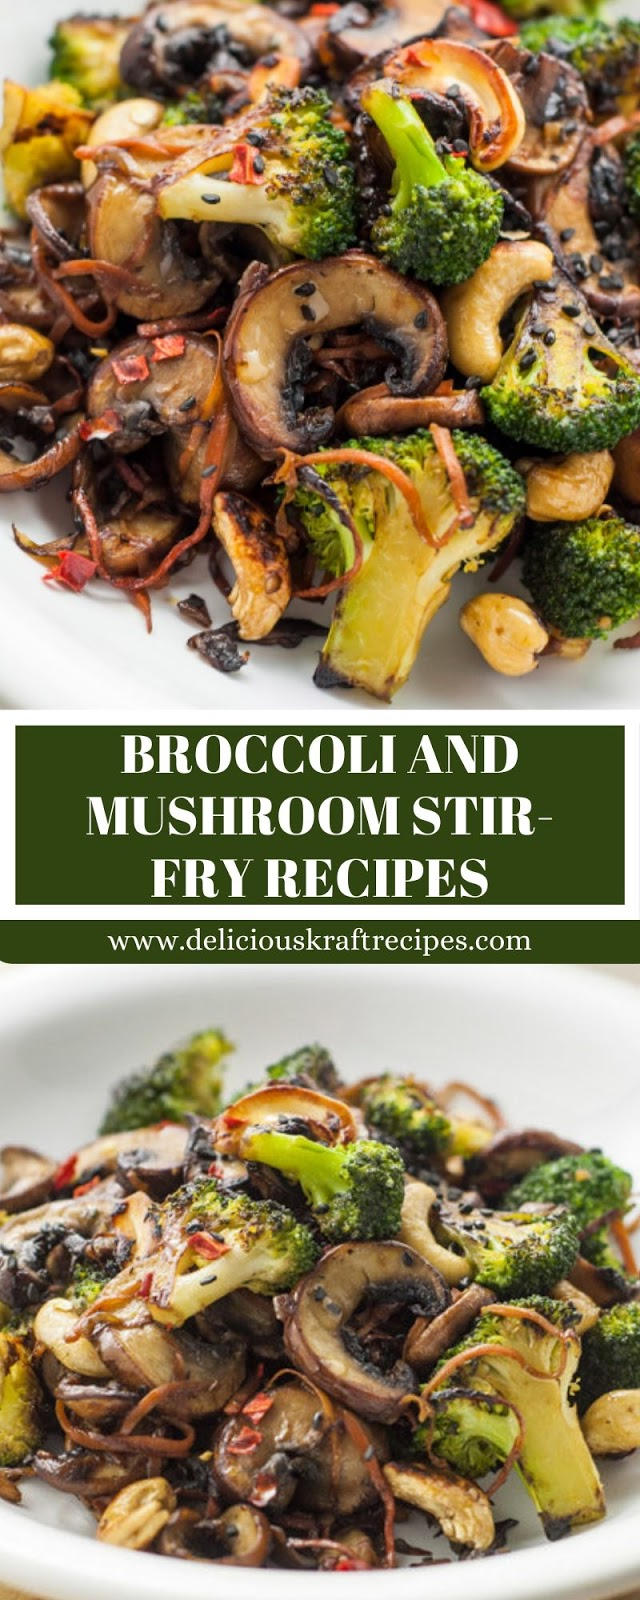 BROCCOLI AND MUSHROOM STIR-FRY RECIPES